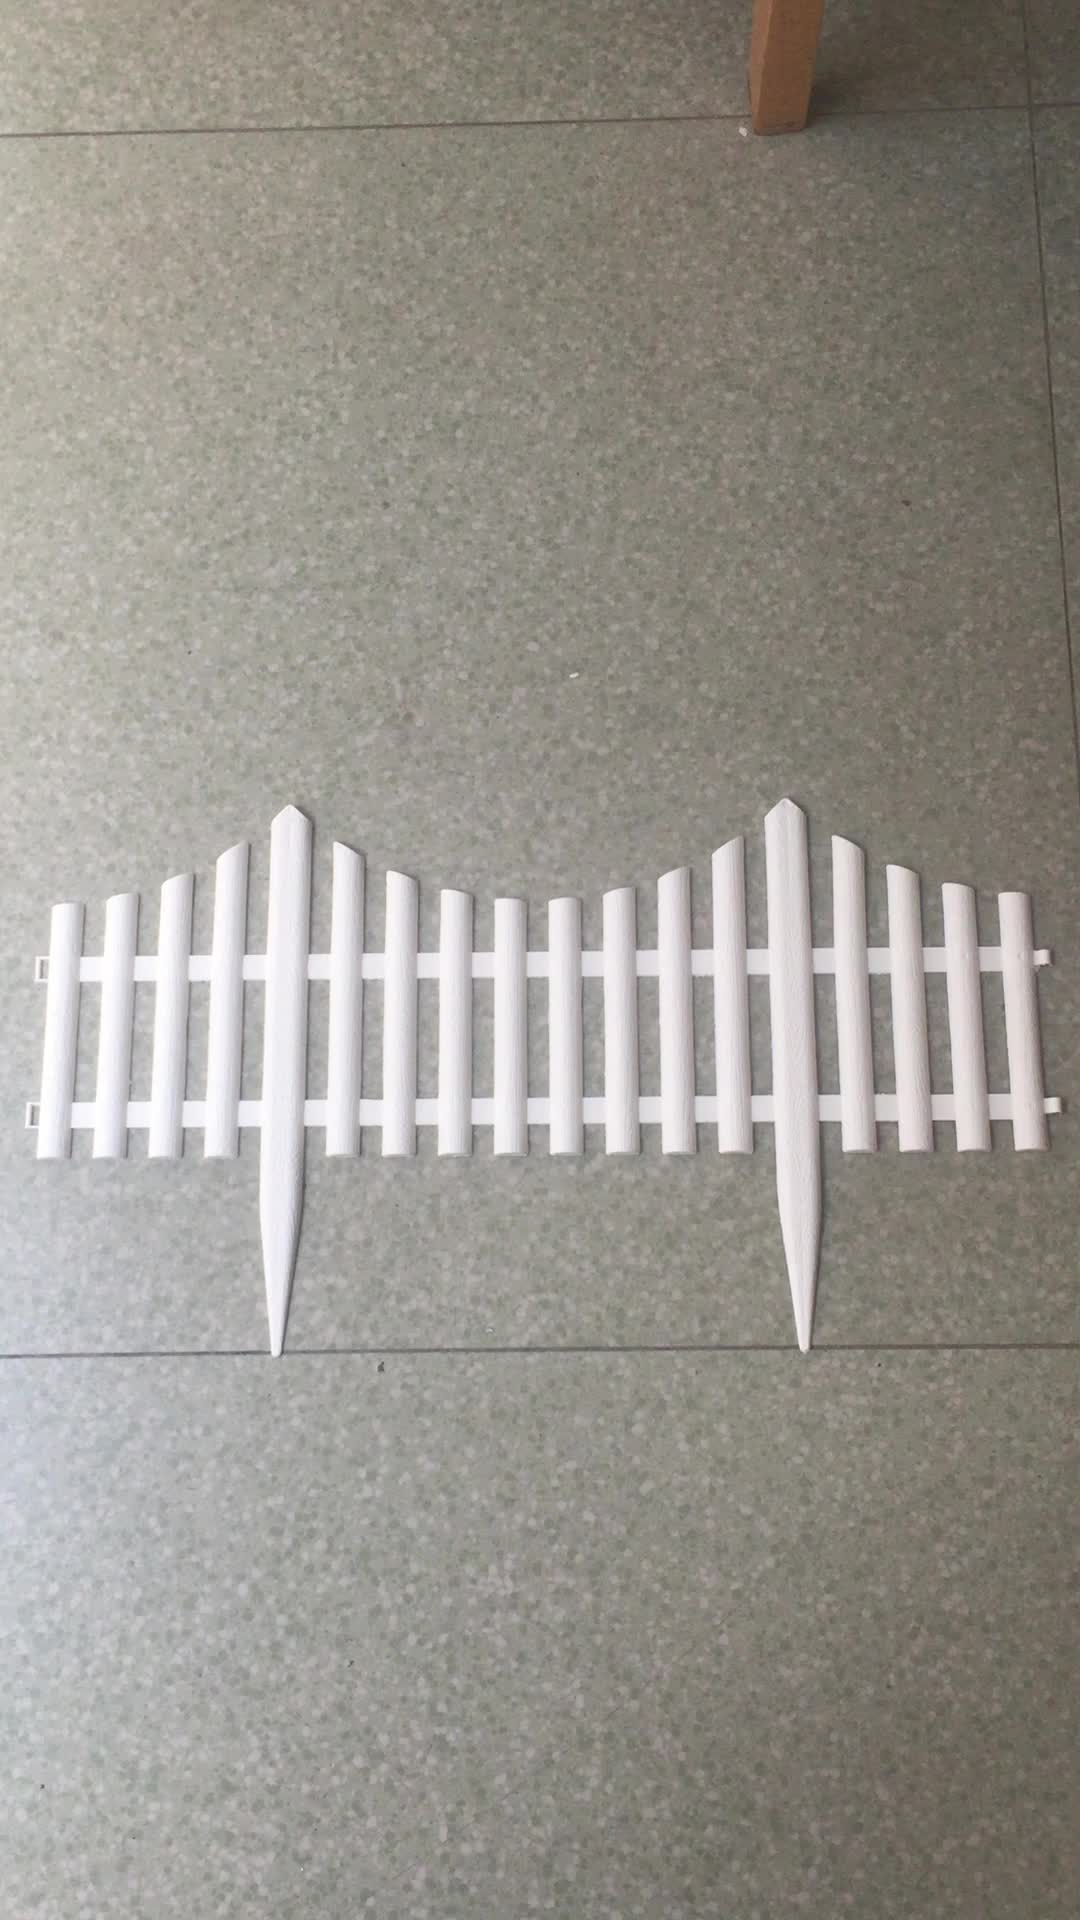 plastic gardeng fencing lawn edging fence